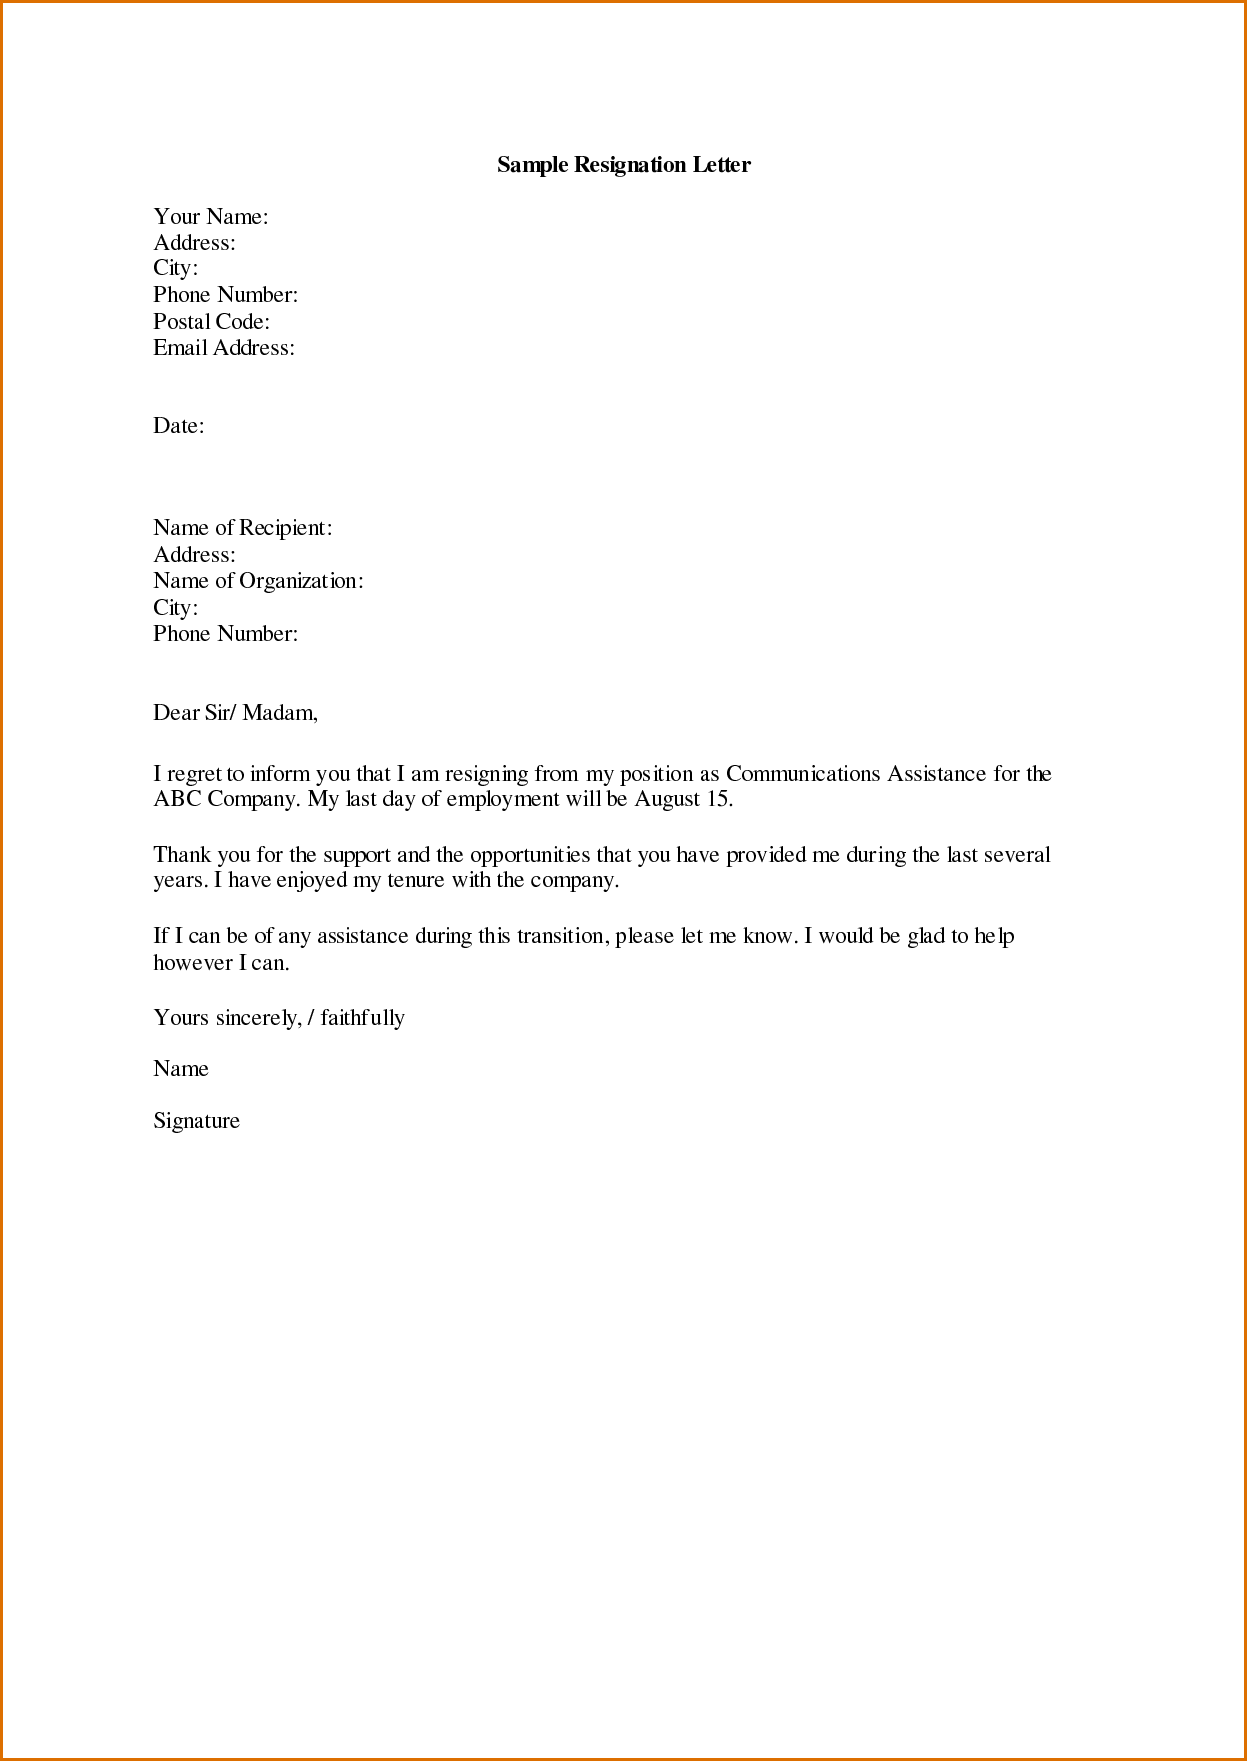 Letter Format Sample Doc Resignation Letter Sample Resignation Letter Format Resignation Sample